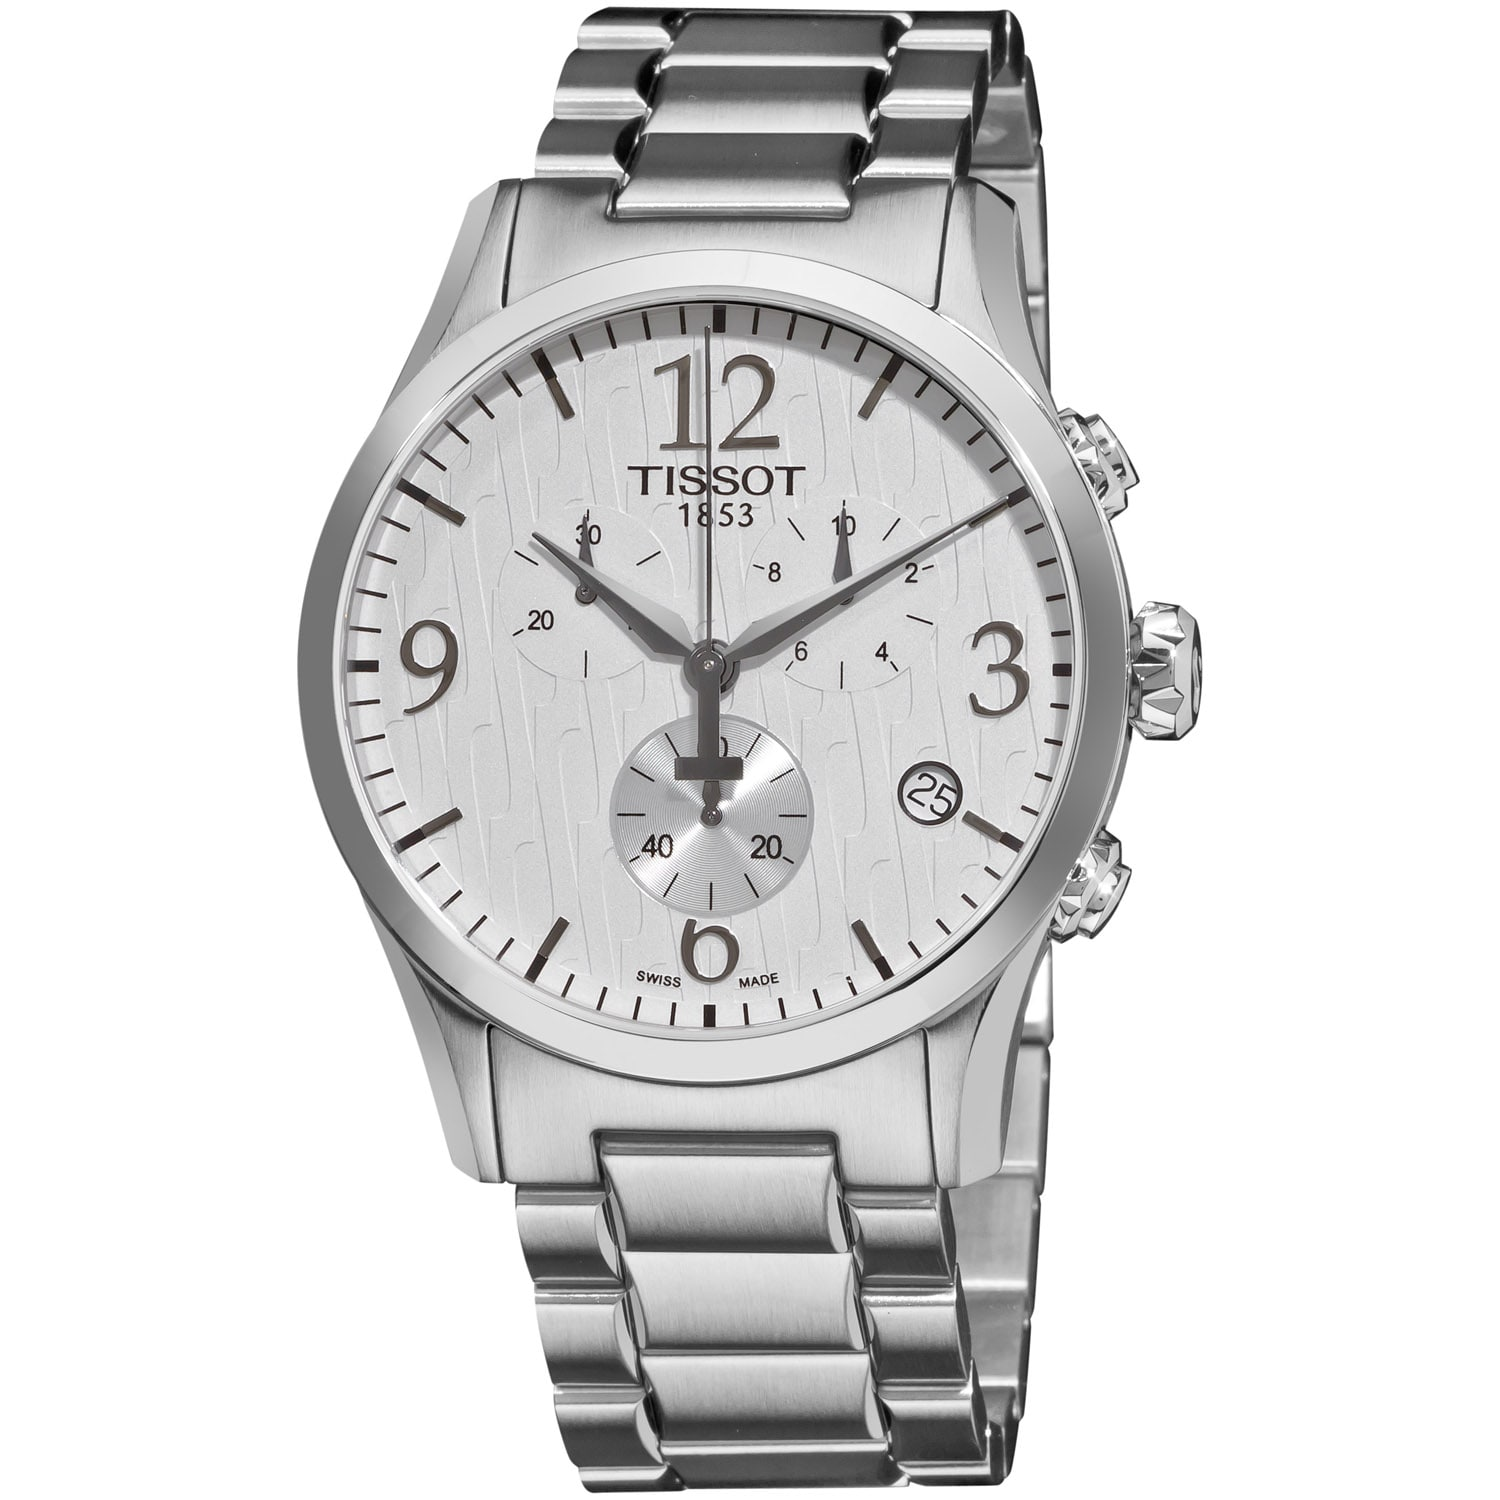 Tissot Men's 'T-Classic' White Dial Chronograph Stainless Steel Watch